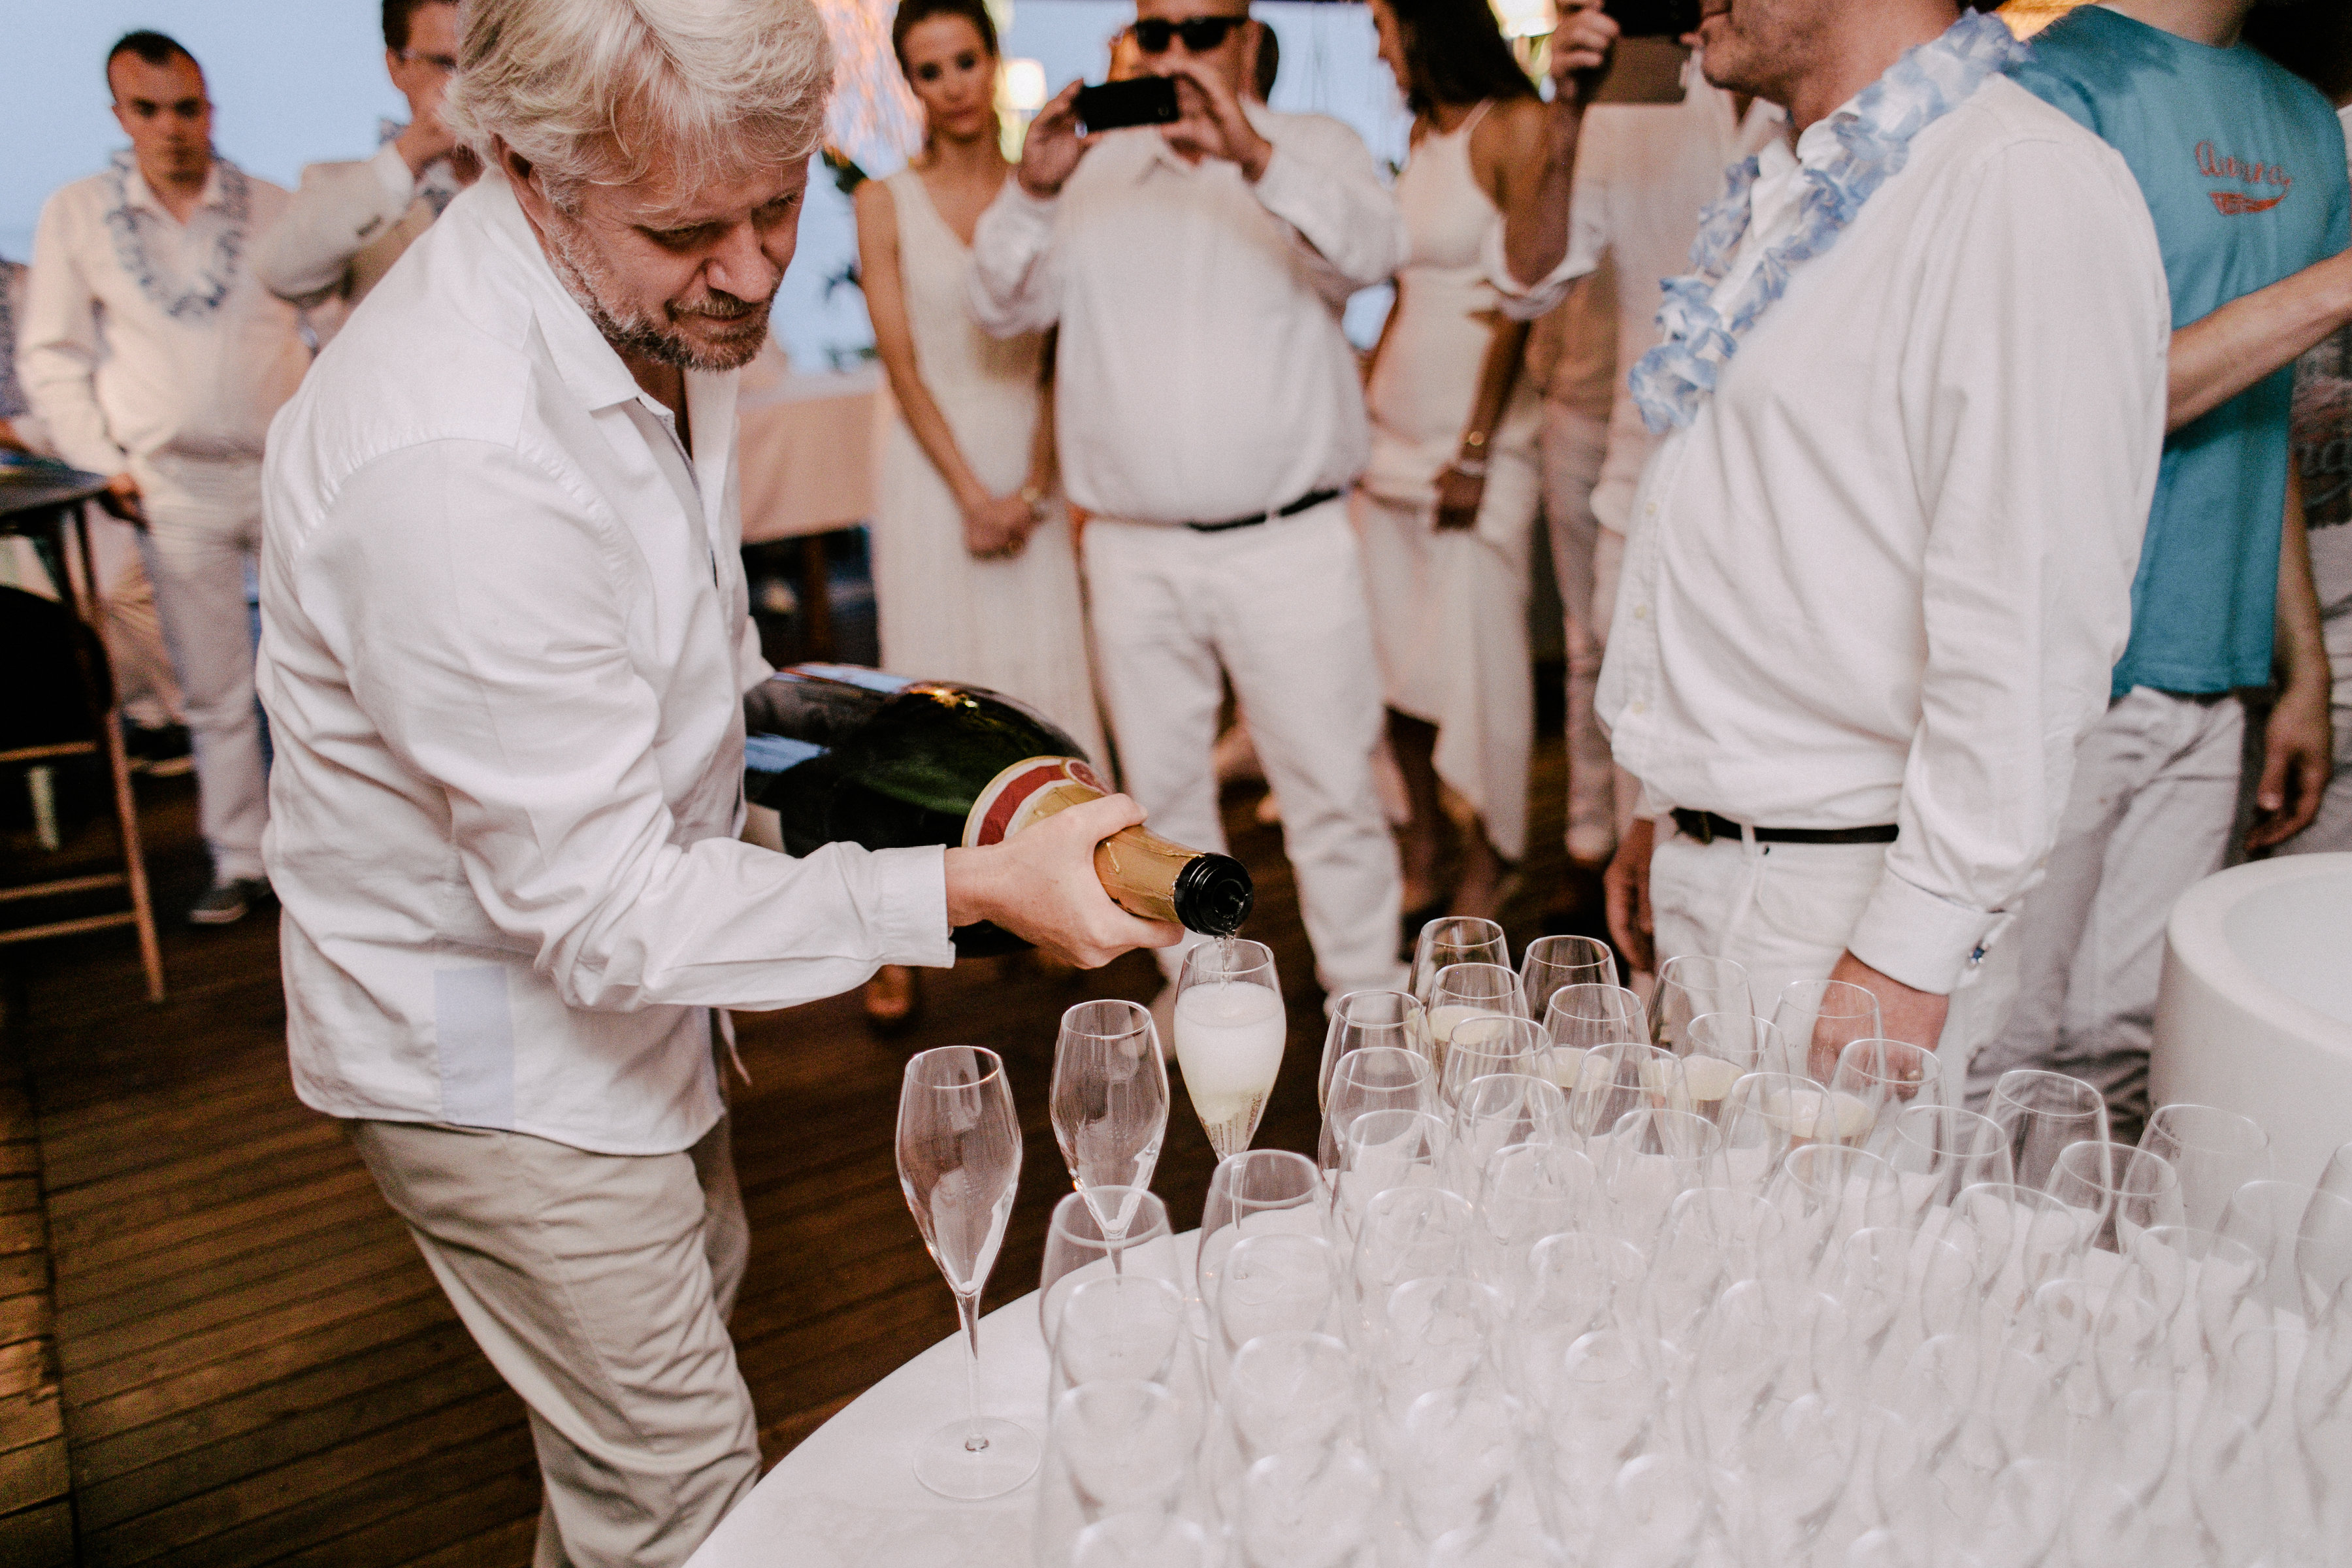 Champagne poured at a wedding reception at Anjuna, a beach restaurant by the Mediterranean Sea.